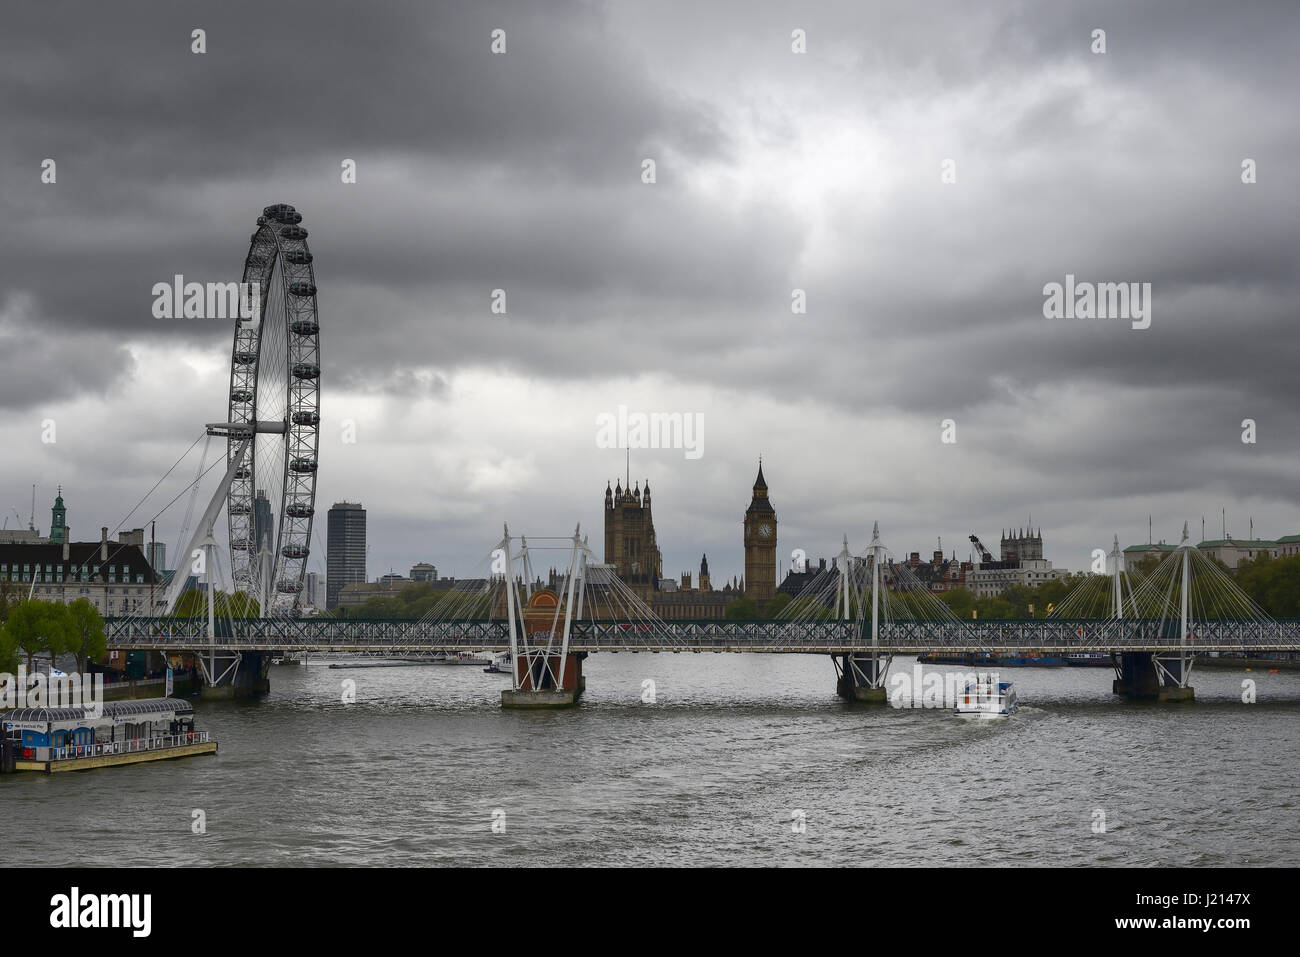 Dark clouds over the Houses of Parliament and London Eye in London - Stock Image